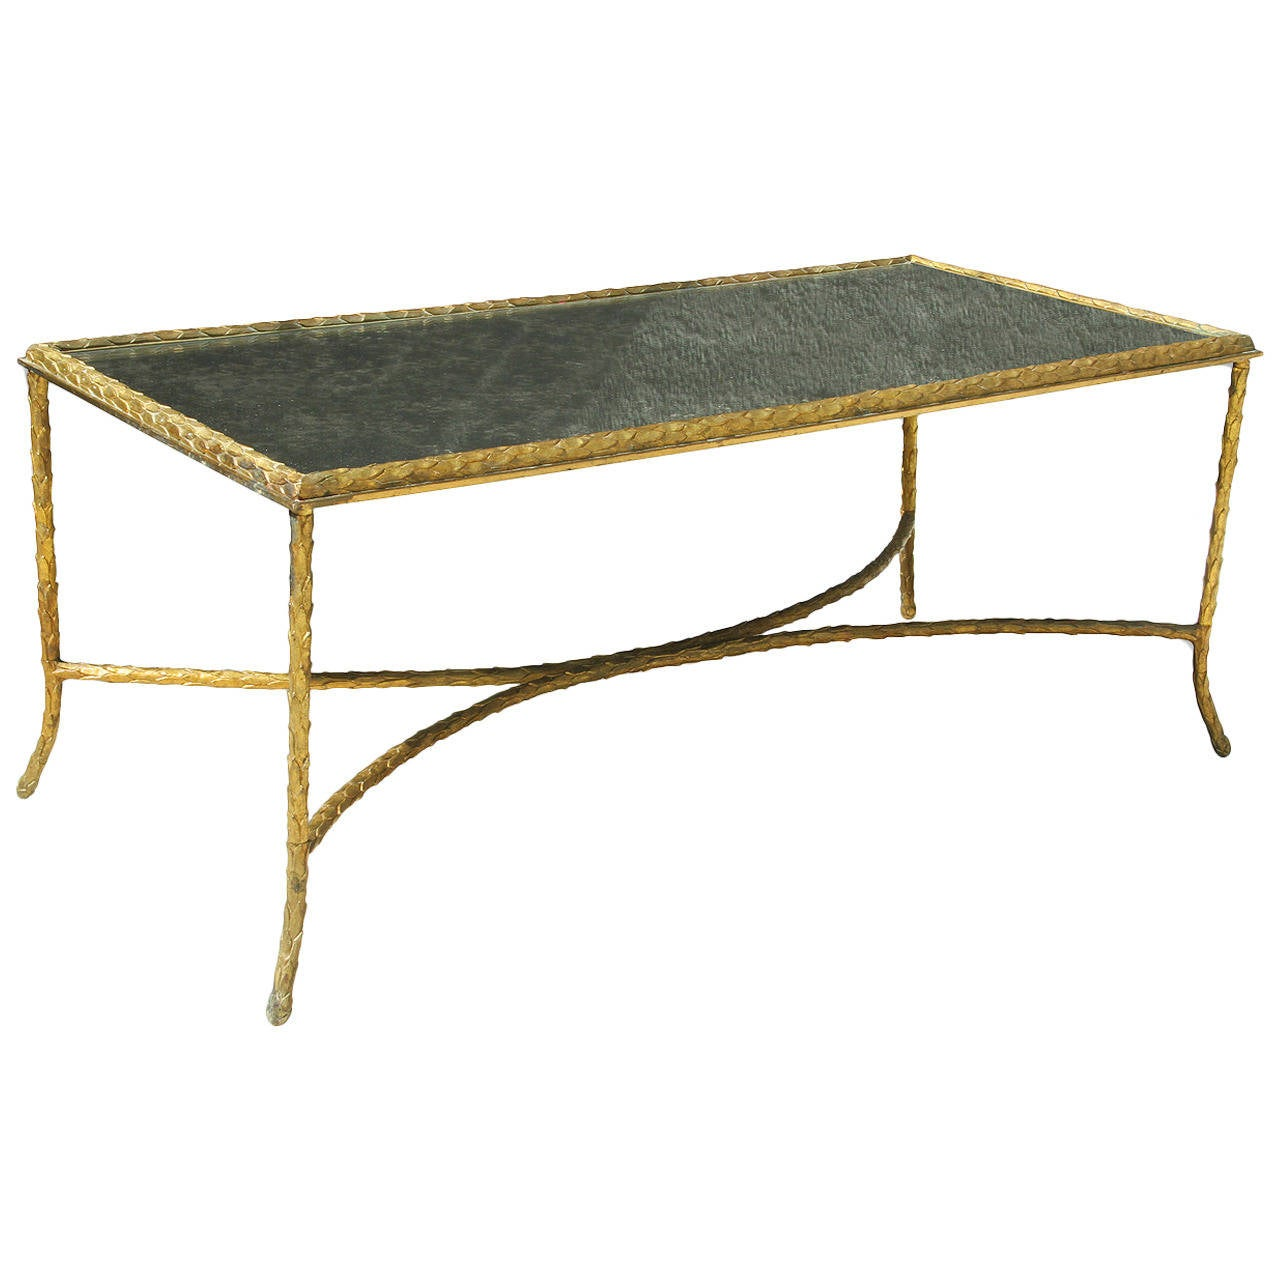 Maison Charles Very Elegant Bronze Coffee Table 1950 At